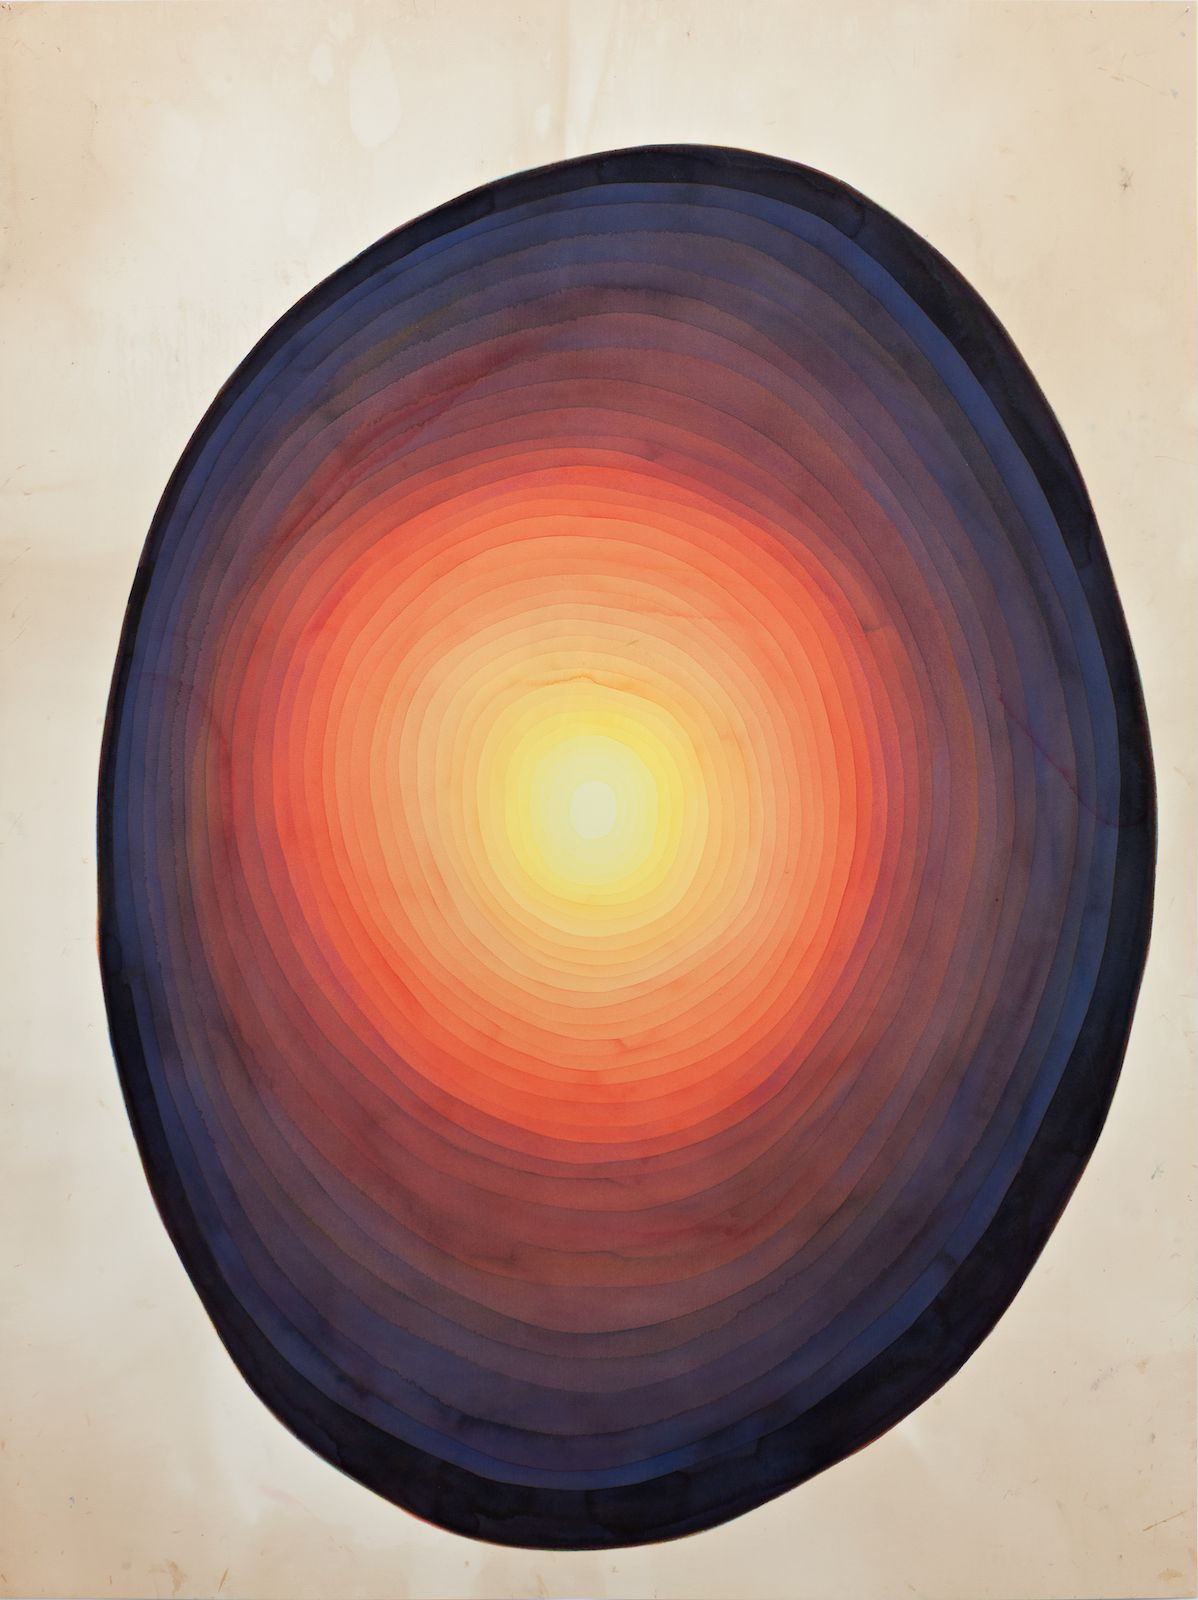 All, Allt, Alles, 2013, watercolor on paper, 190 x 142 cm